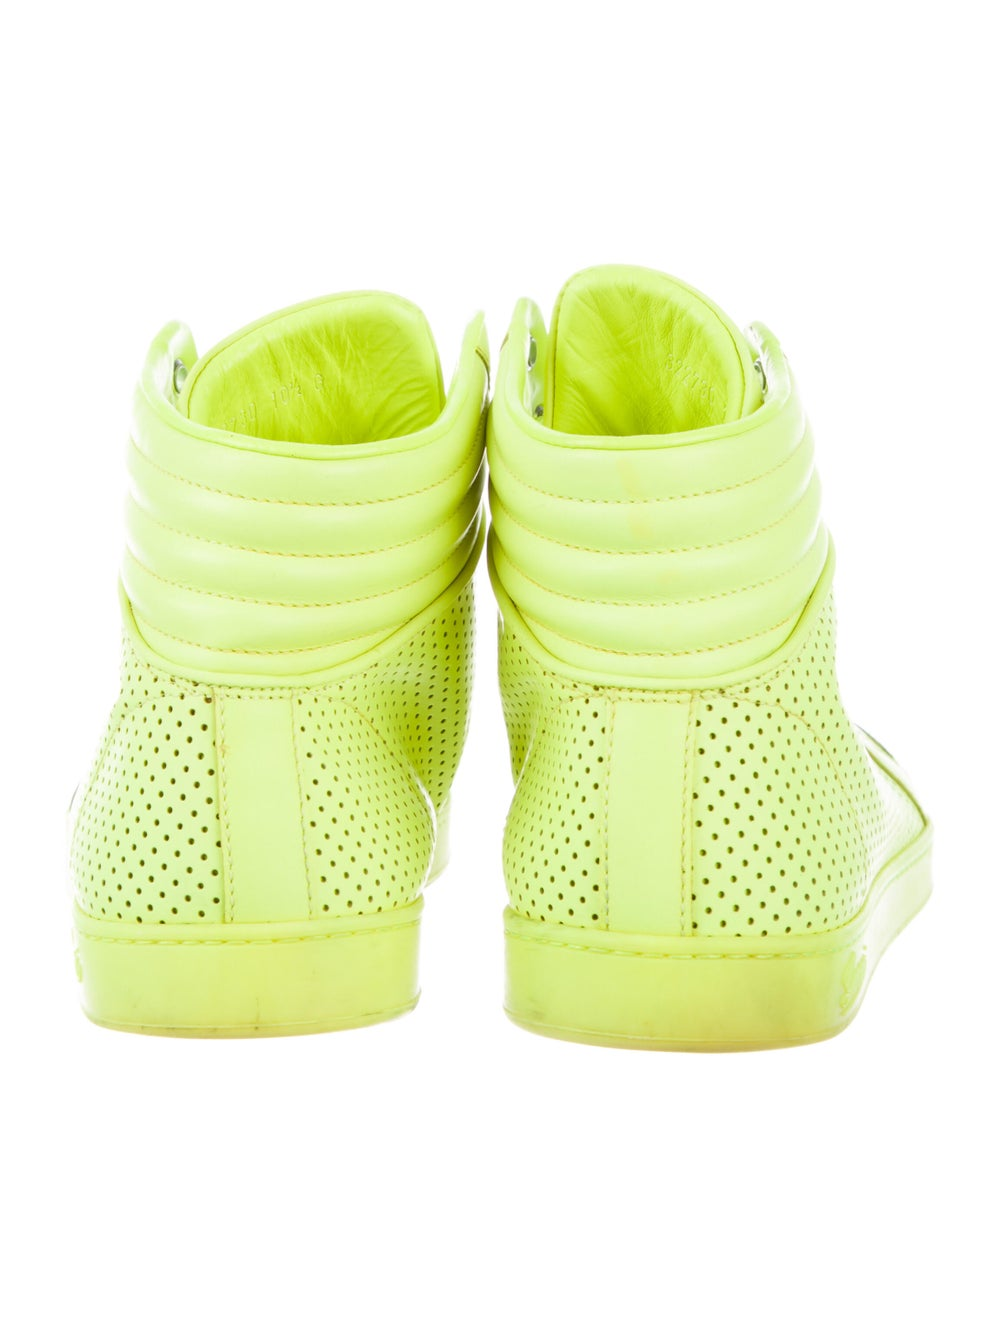 Gucci Leather Sneakers Green - image 4